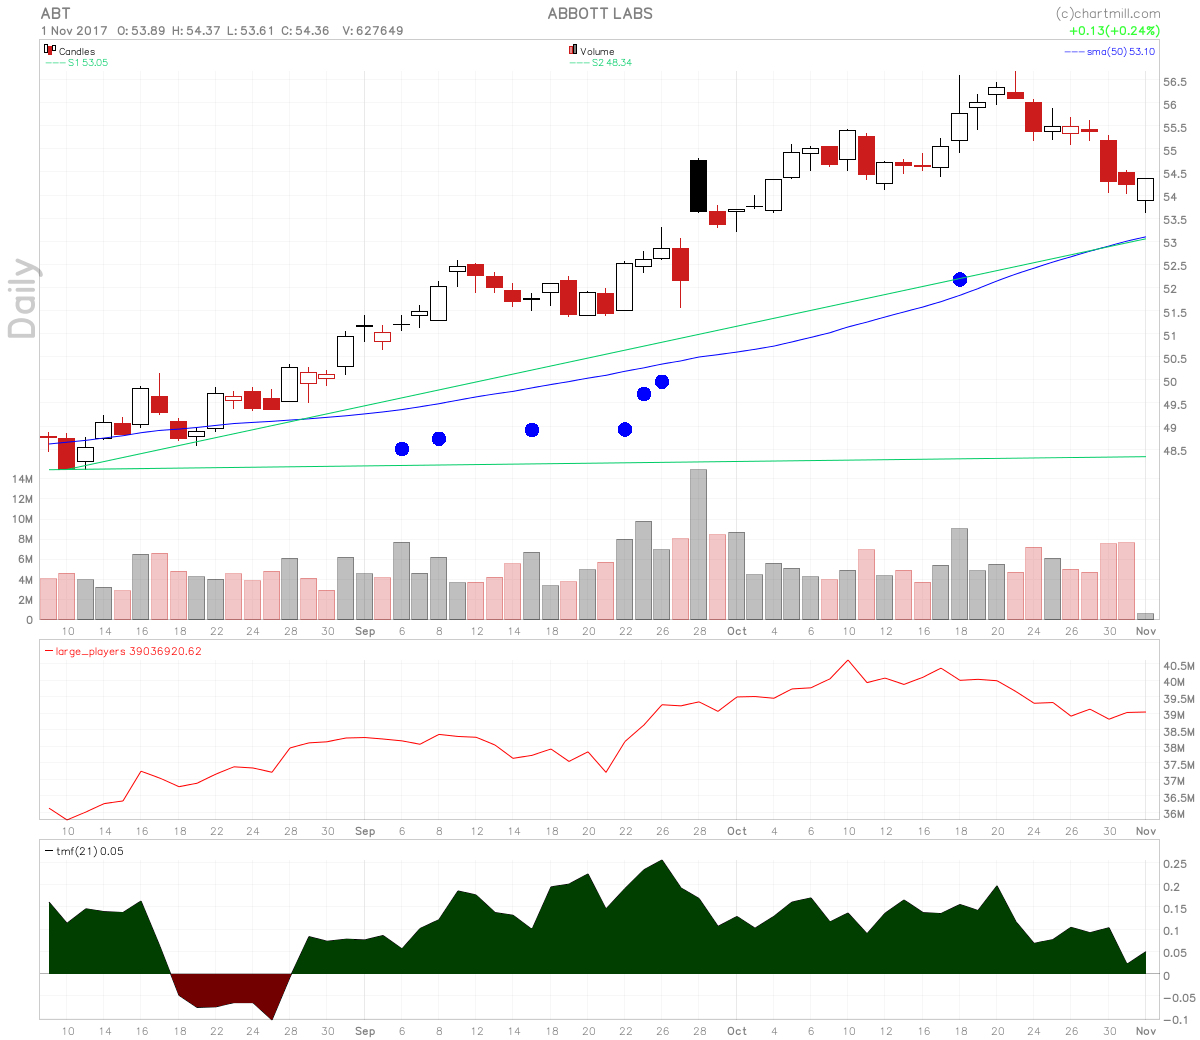 Abbott Laboratories stock shows a pullback to uptrend line support.